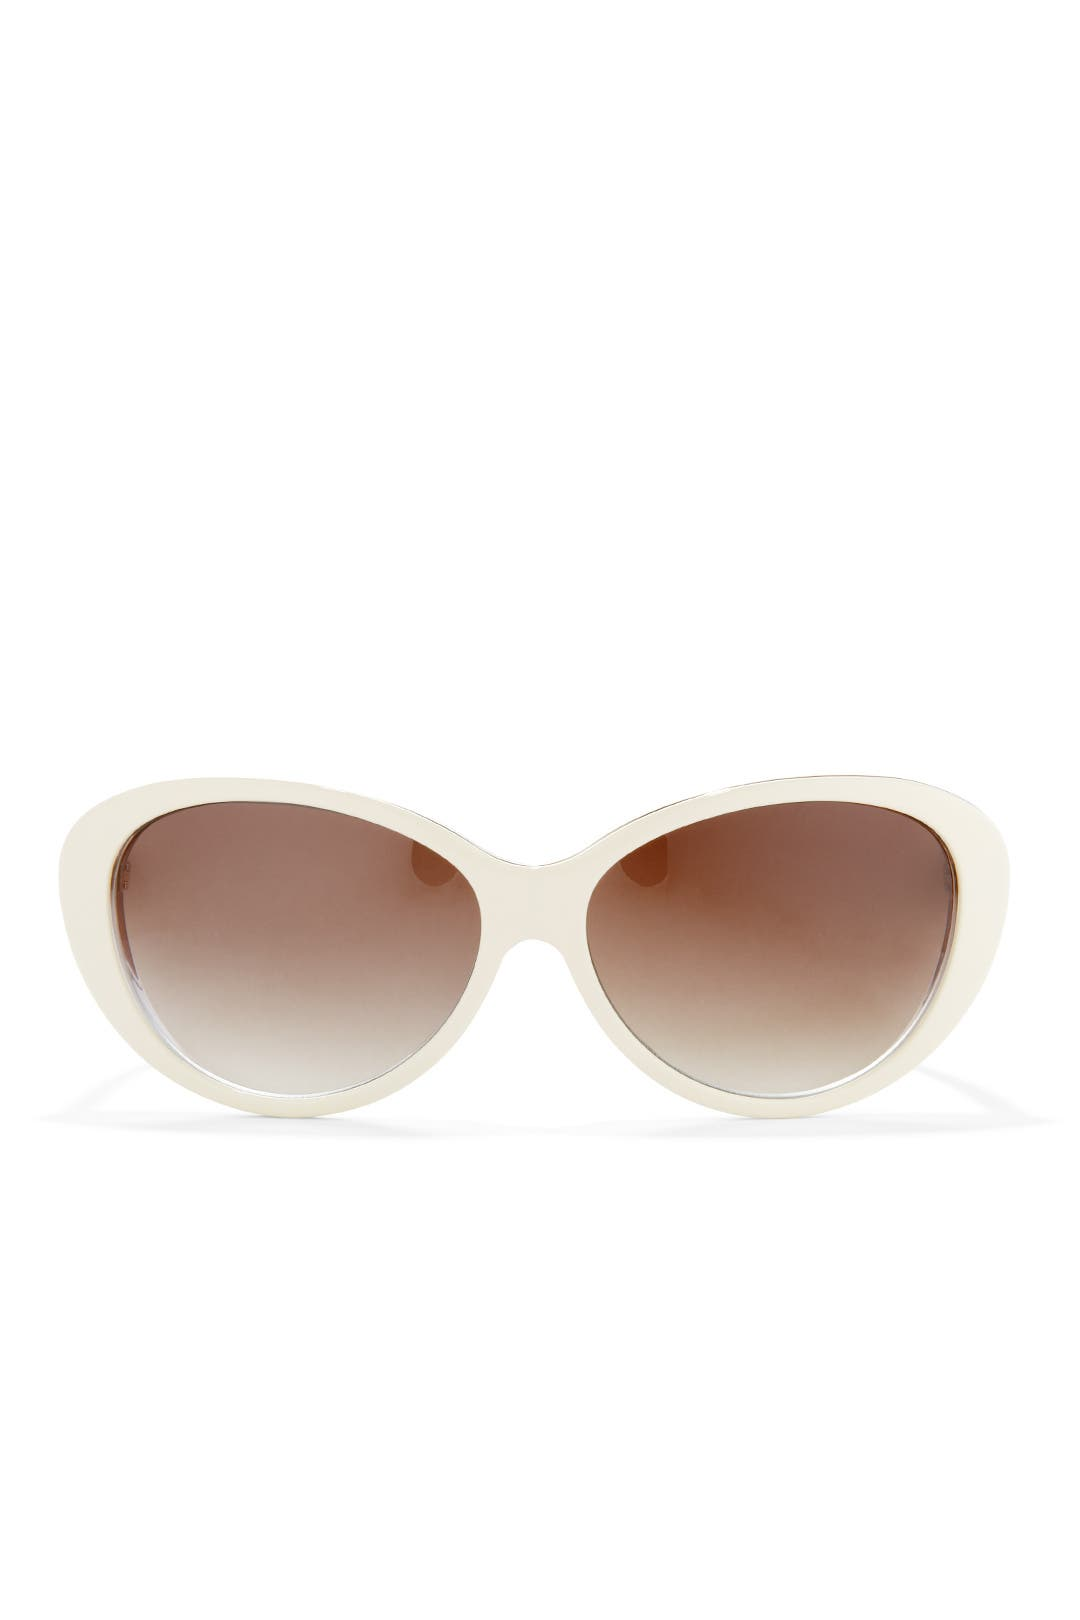 Augustine Sunglasses by Balenciaga Accessories